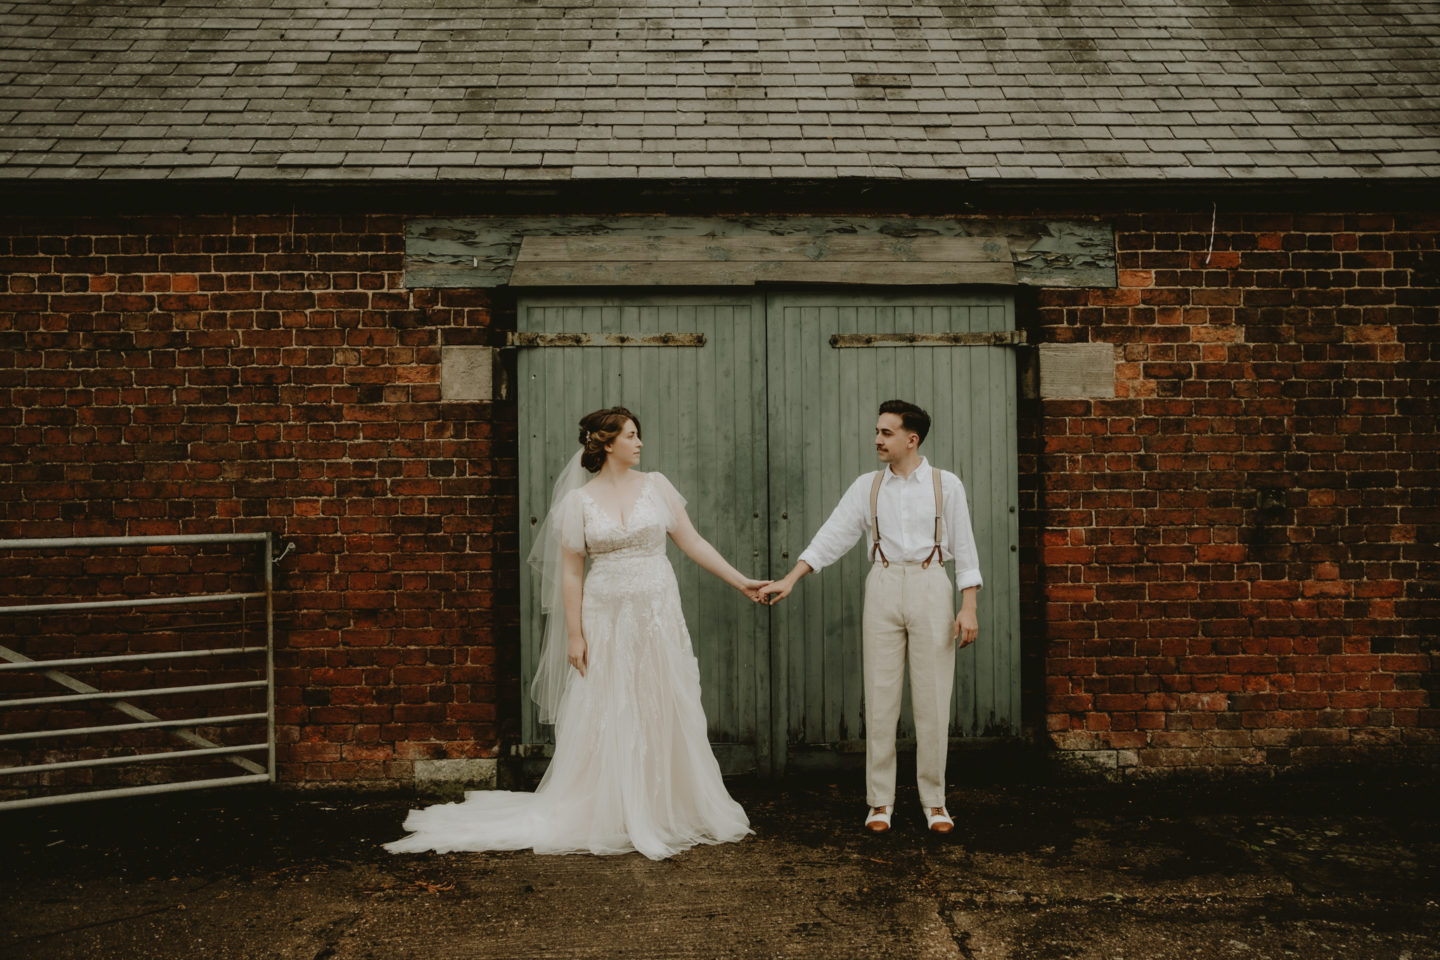 Romantic Intimate Wedding Inspiration With Vintage Vibes At Manor Farm